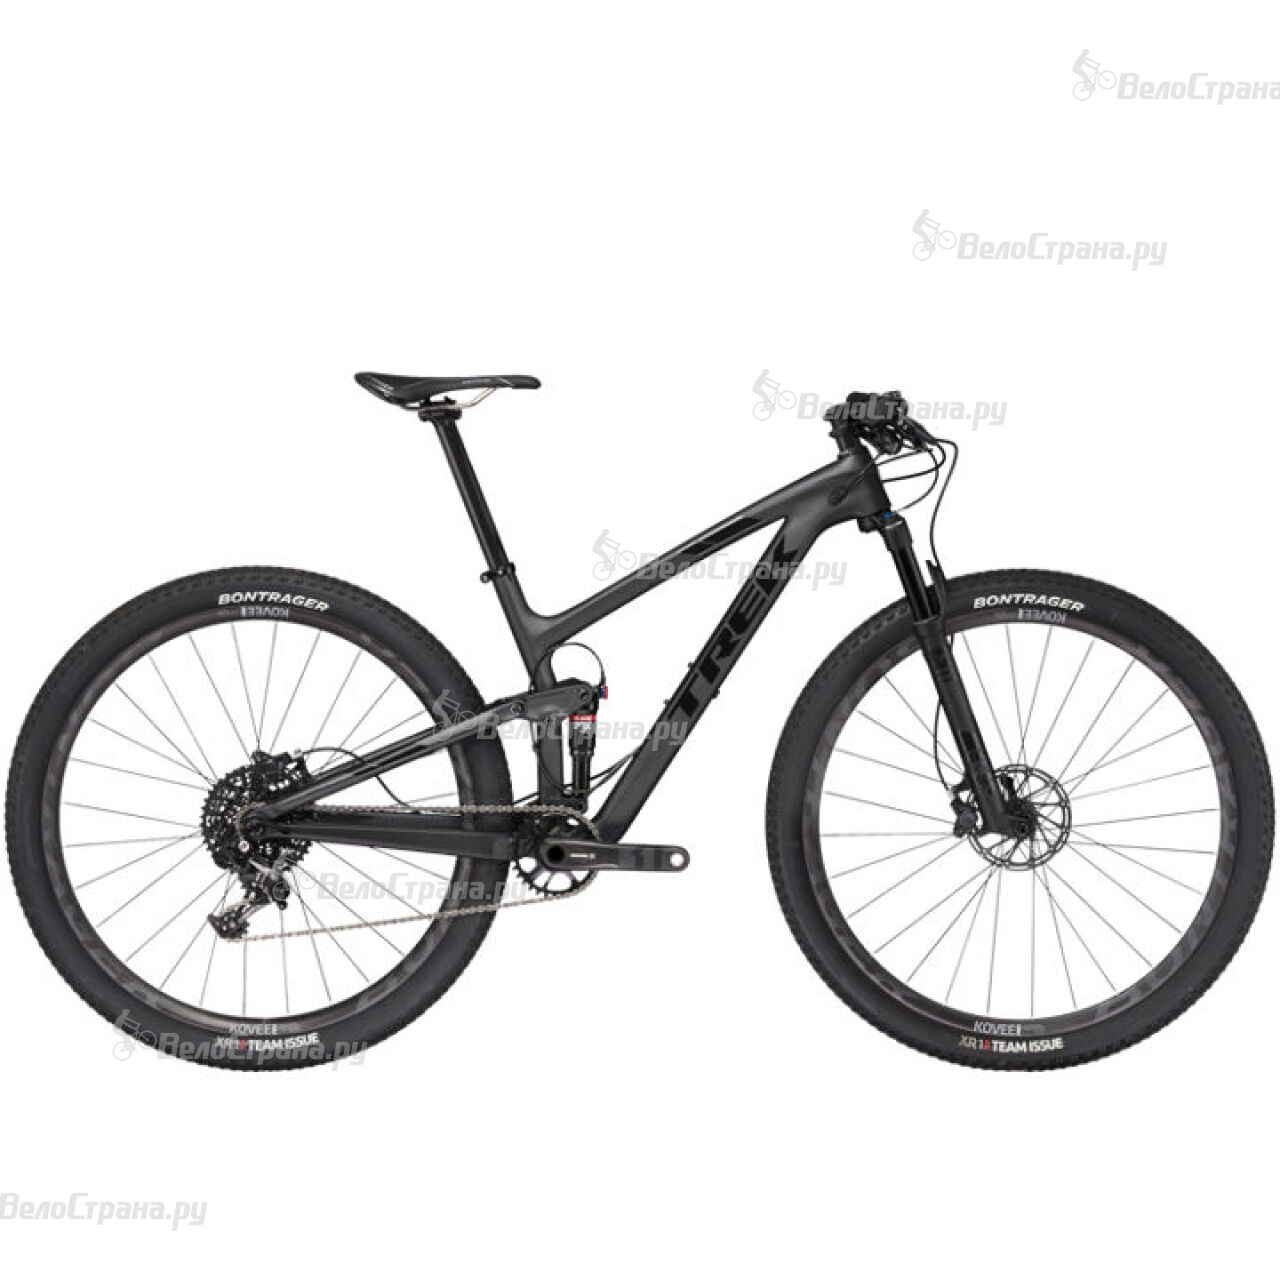 Велосипед Trek Top Fuel 9.8 SL (2017) велосипед trek fuel ex 9 29 2017